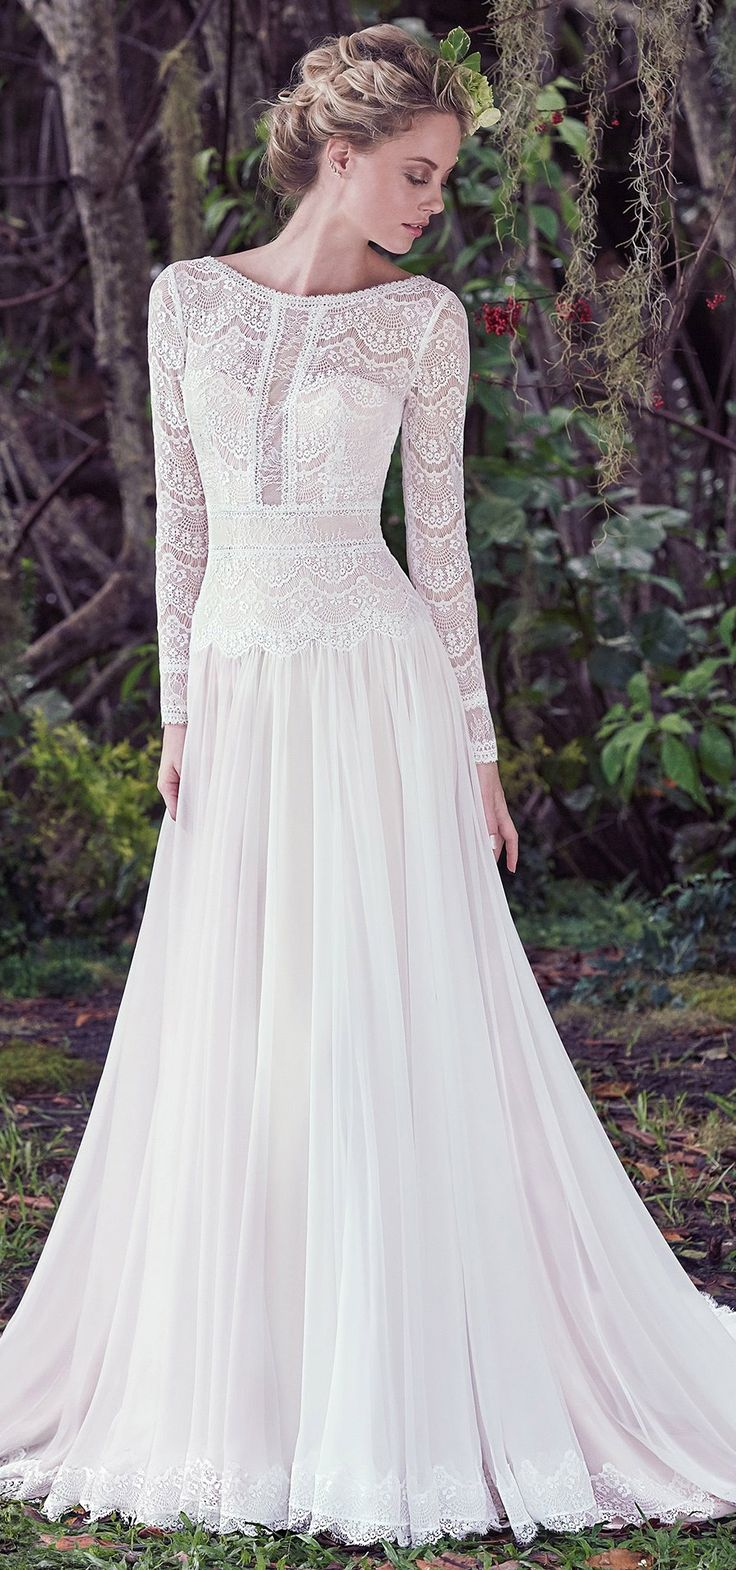 "Bohemian beauty! ""DEIRDRE"" by #maggiesottero. Understated elegance is found in this subtle lace and Santorini chiffon A-line wedding dress, complete with bateau neckline and long sleeves."